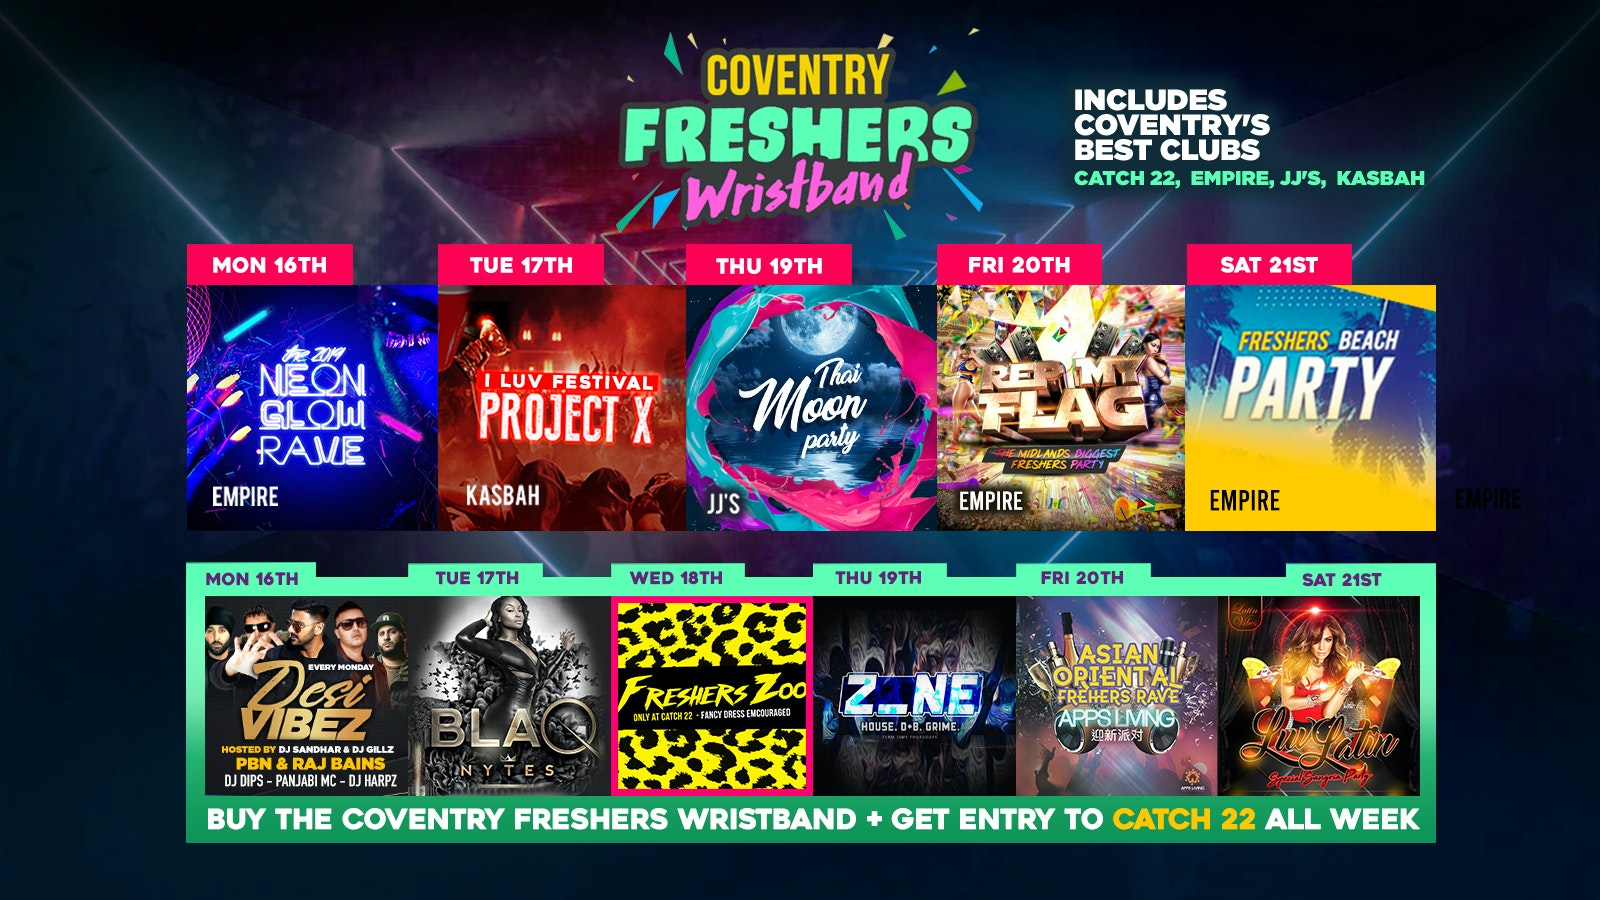 COVENTRY FRESHERS PASS 2019 / 11 Events!